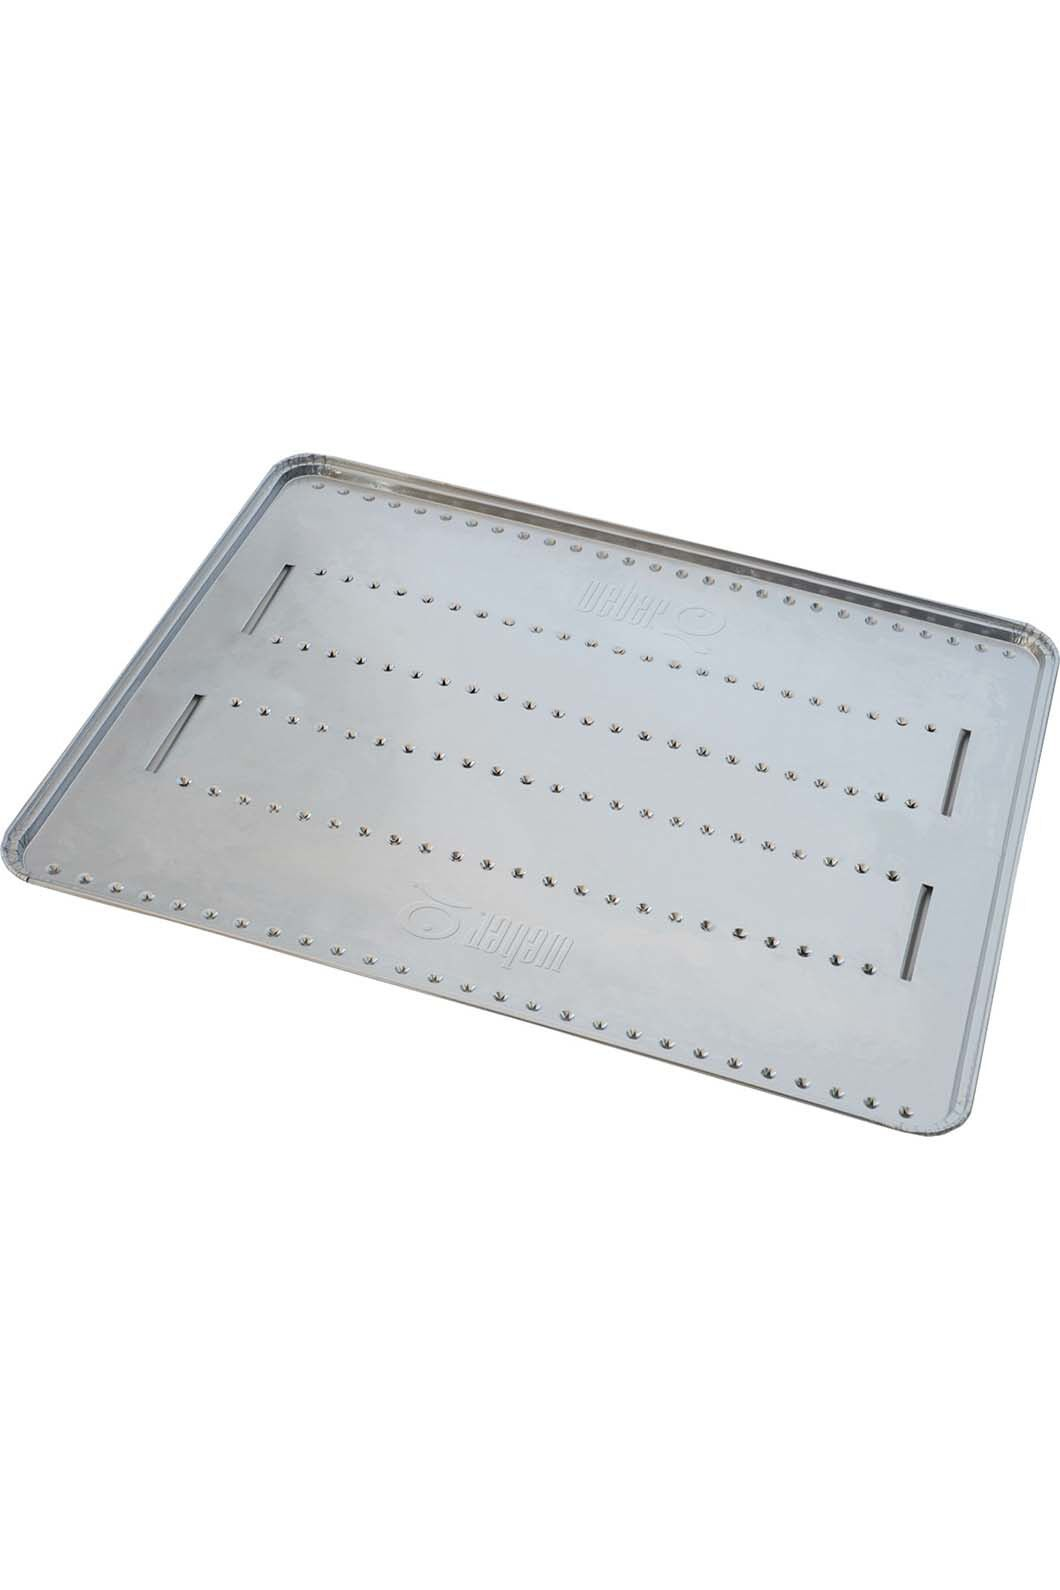 Weber Family Q Convection Tray, None, hi-res